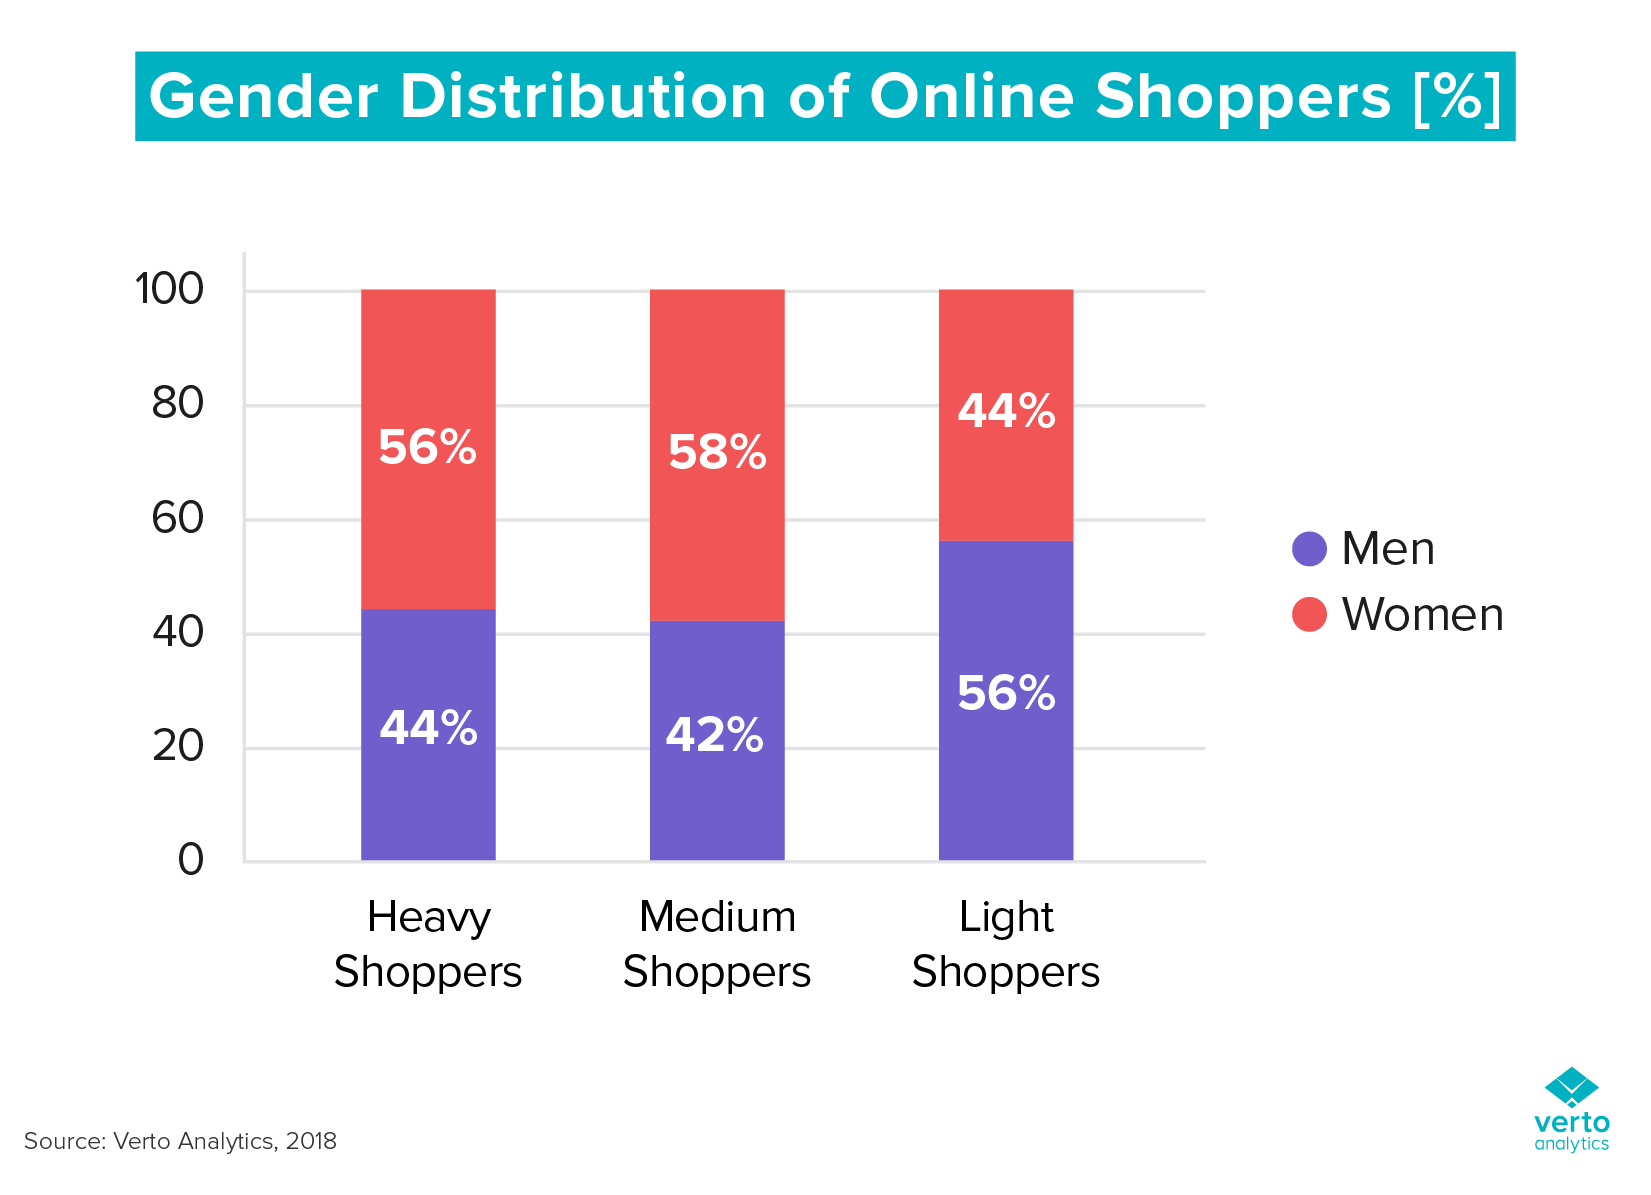 types of online shoppers by gender